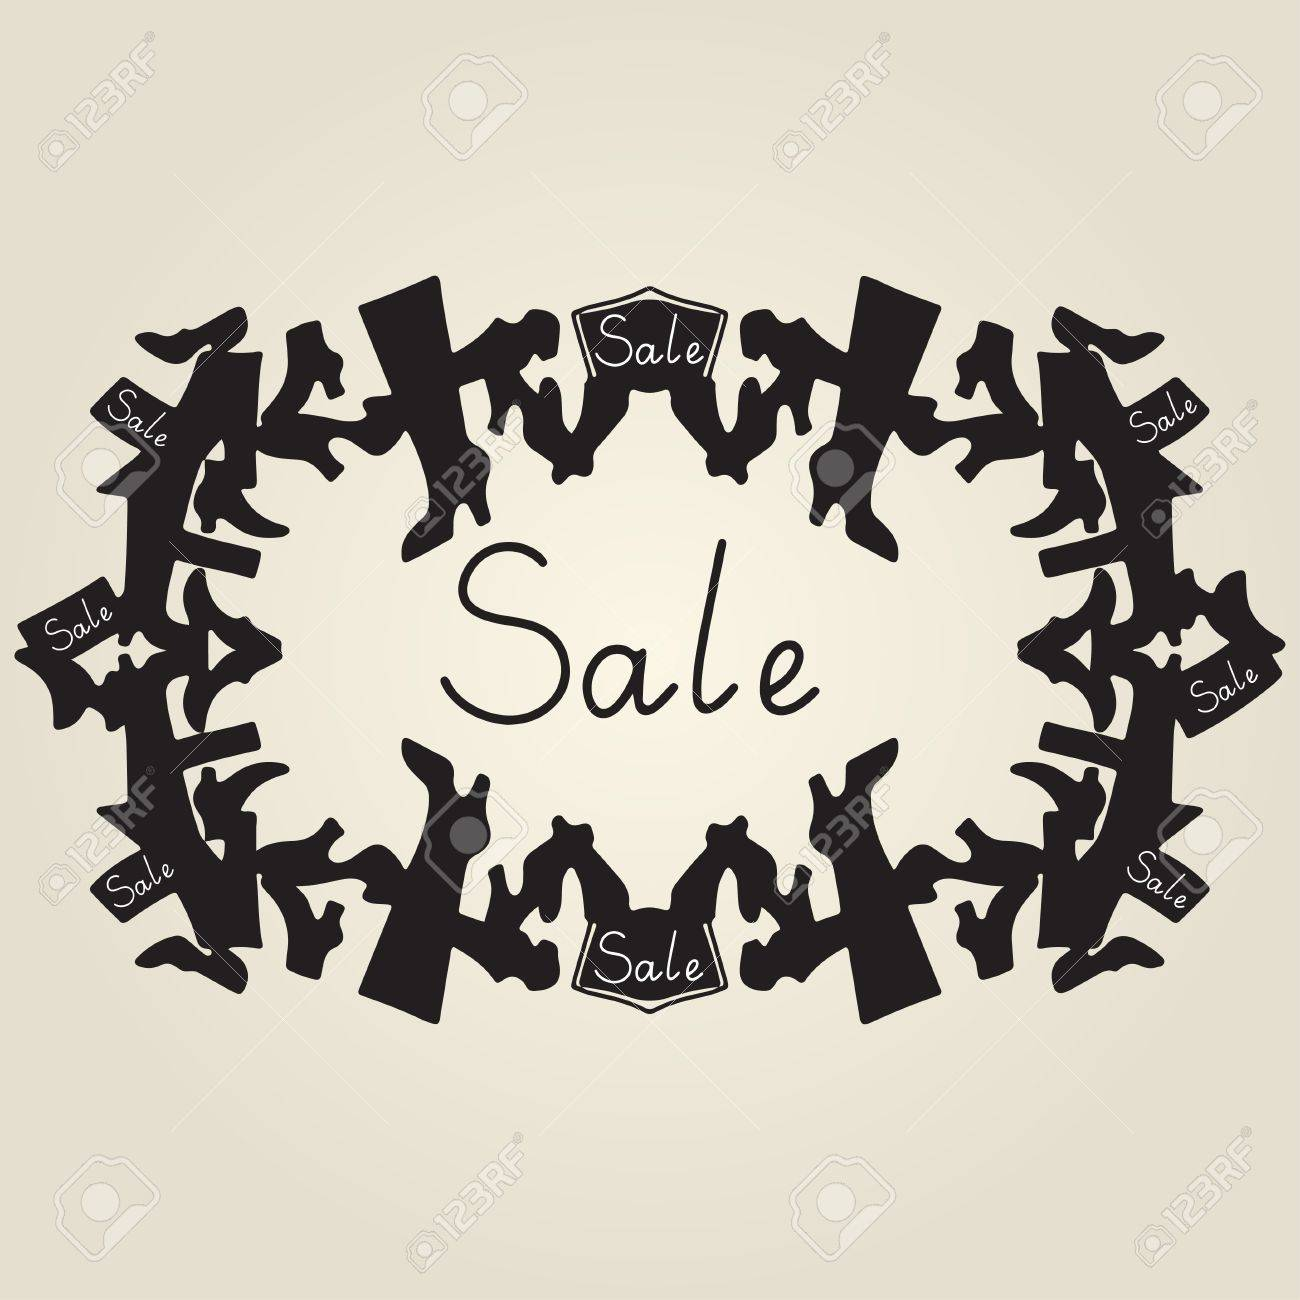 Vintage Frame Shoes Sale Royalty Free Cliparts Vectors And Stock